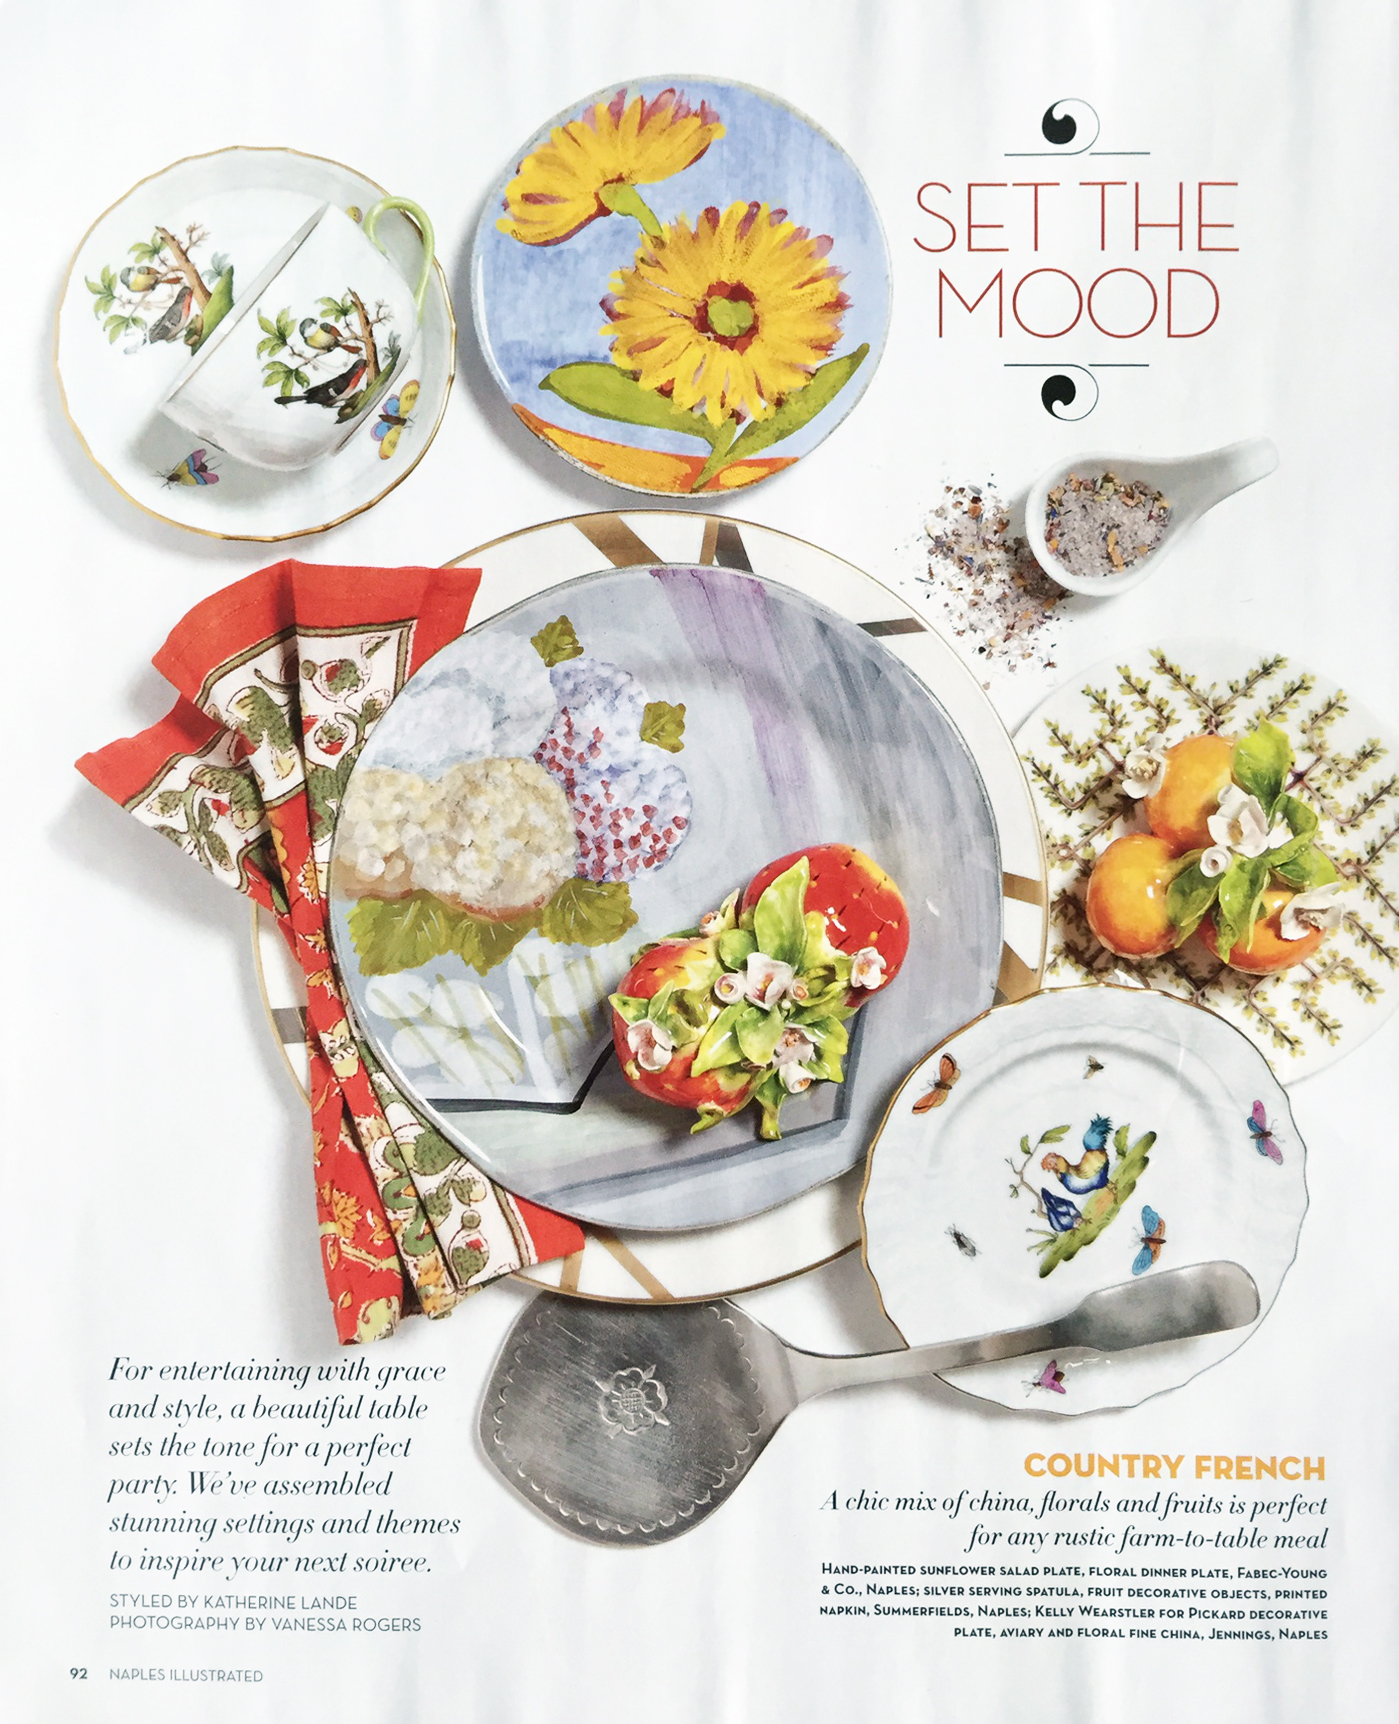 set_the_mood_editorial_naples_illustrated_plateware_photographed_by_vanessa_rogers